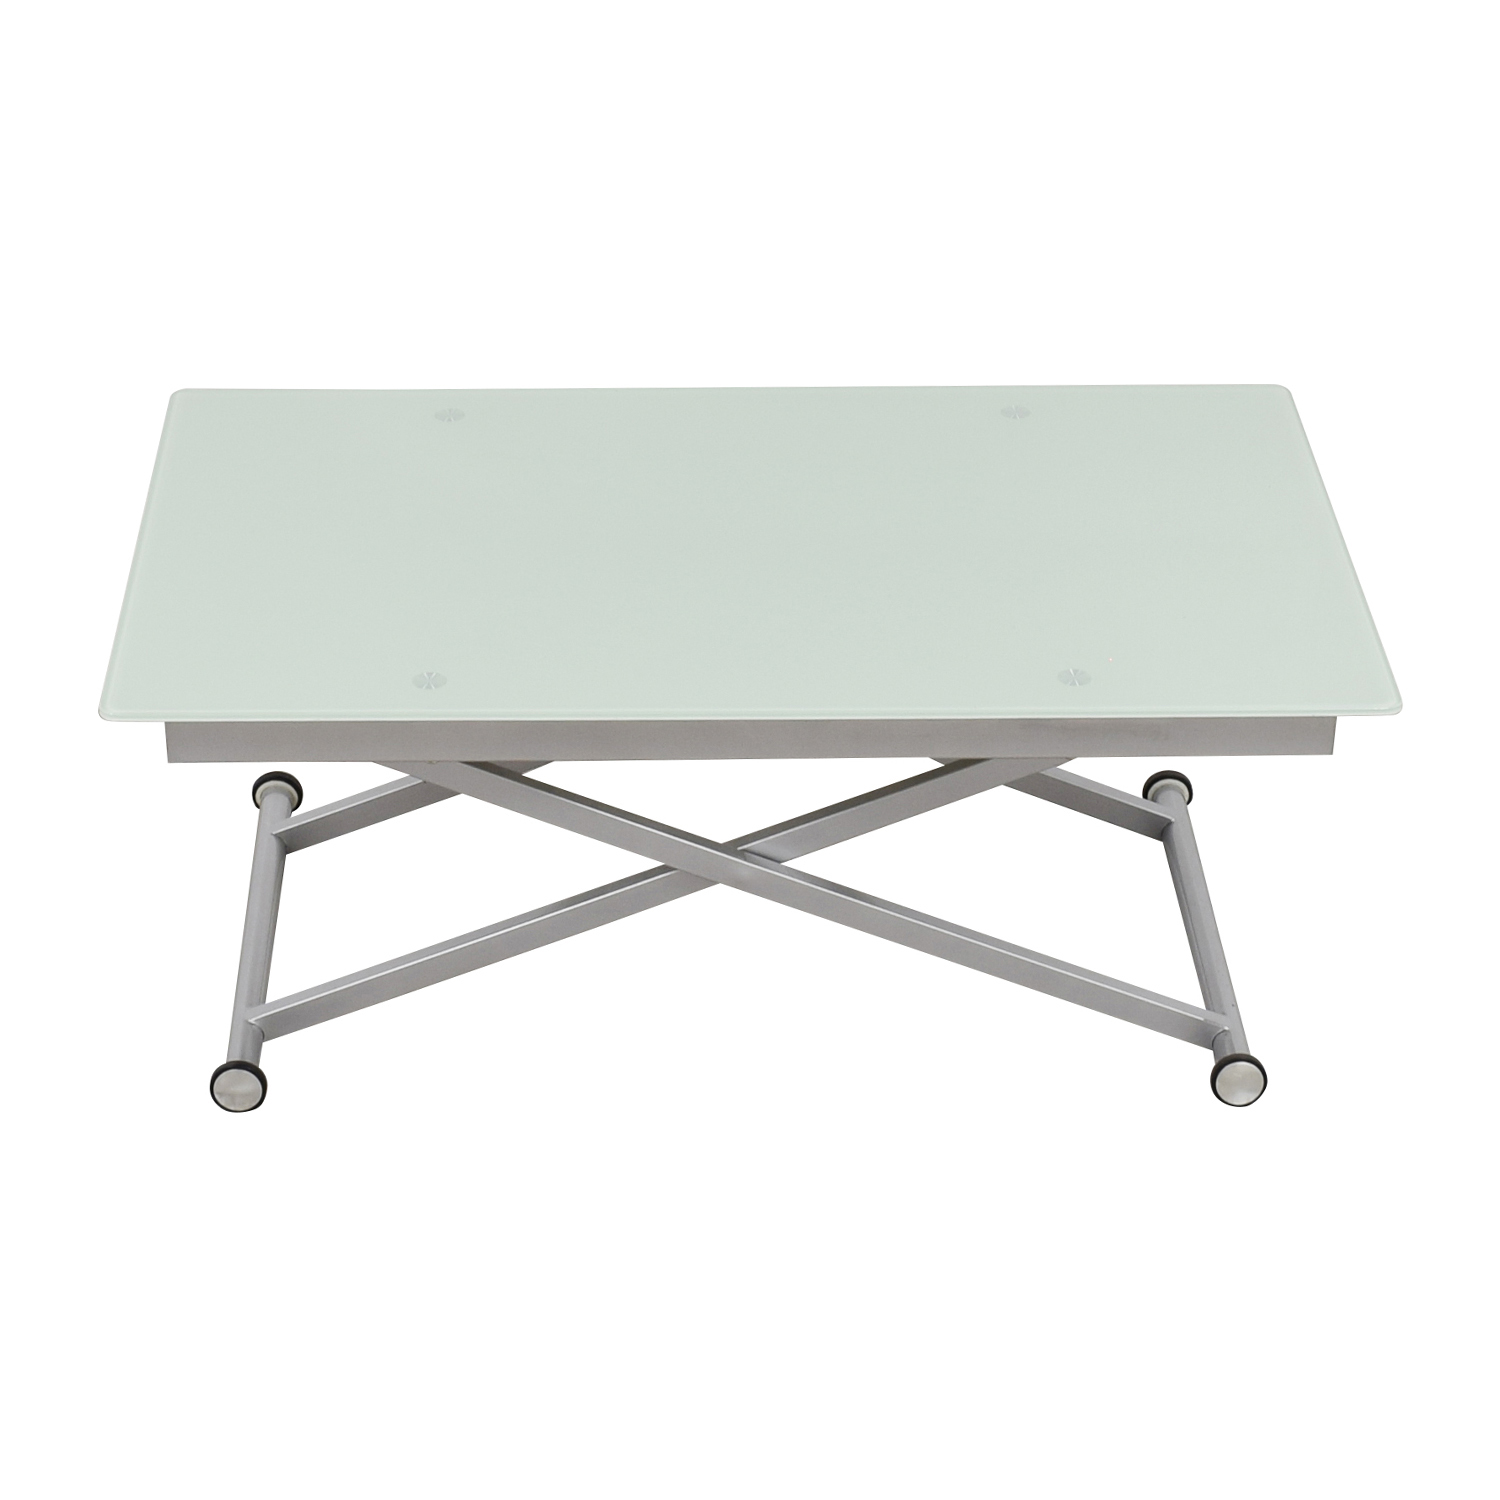 Modern Adjustable Height Coffee Table / Tables